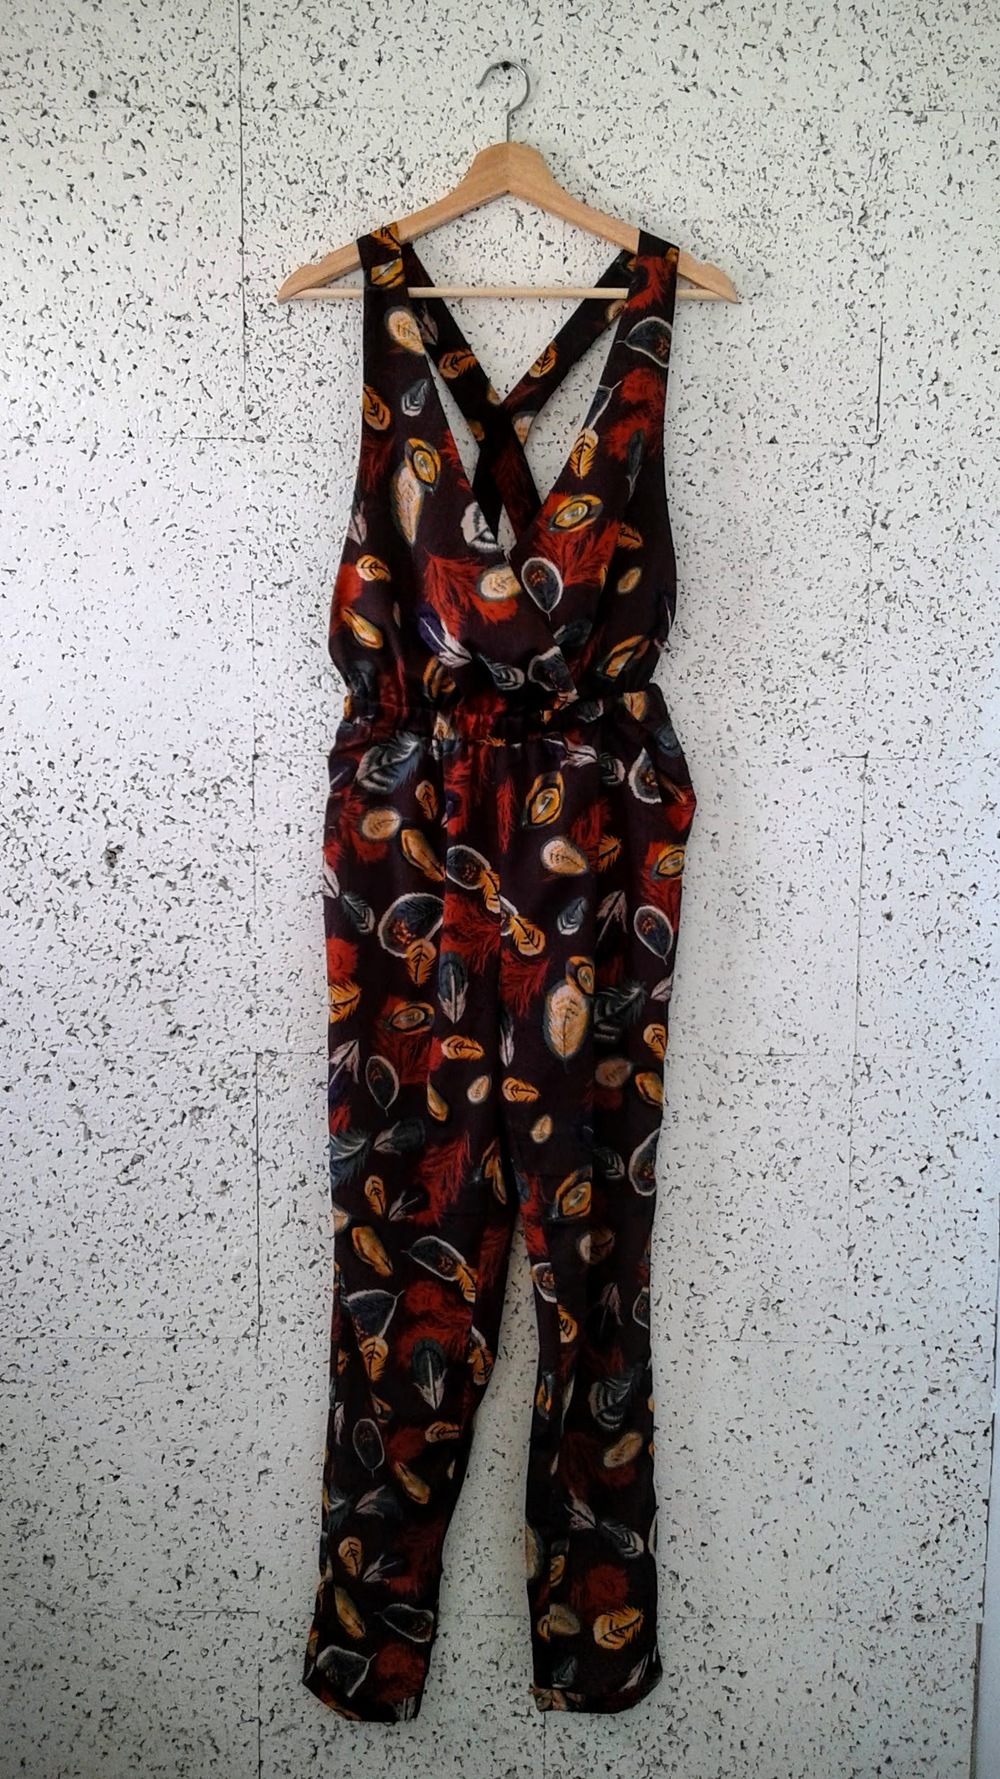 Hot and Delicious jumpsuit; Size M, $22